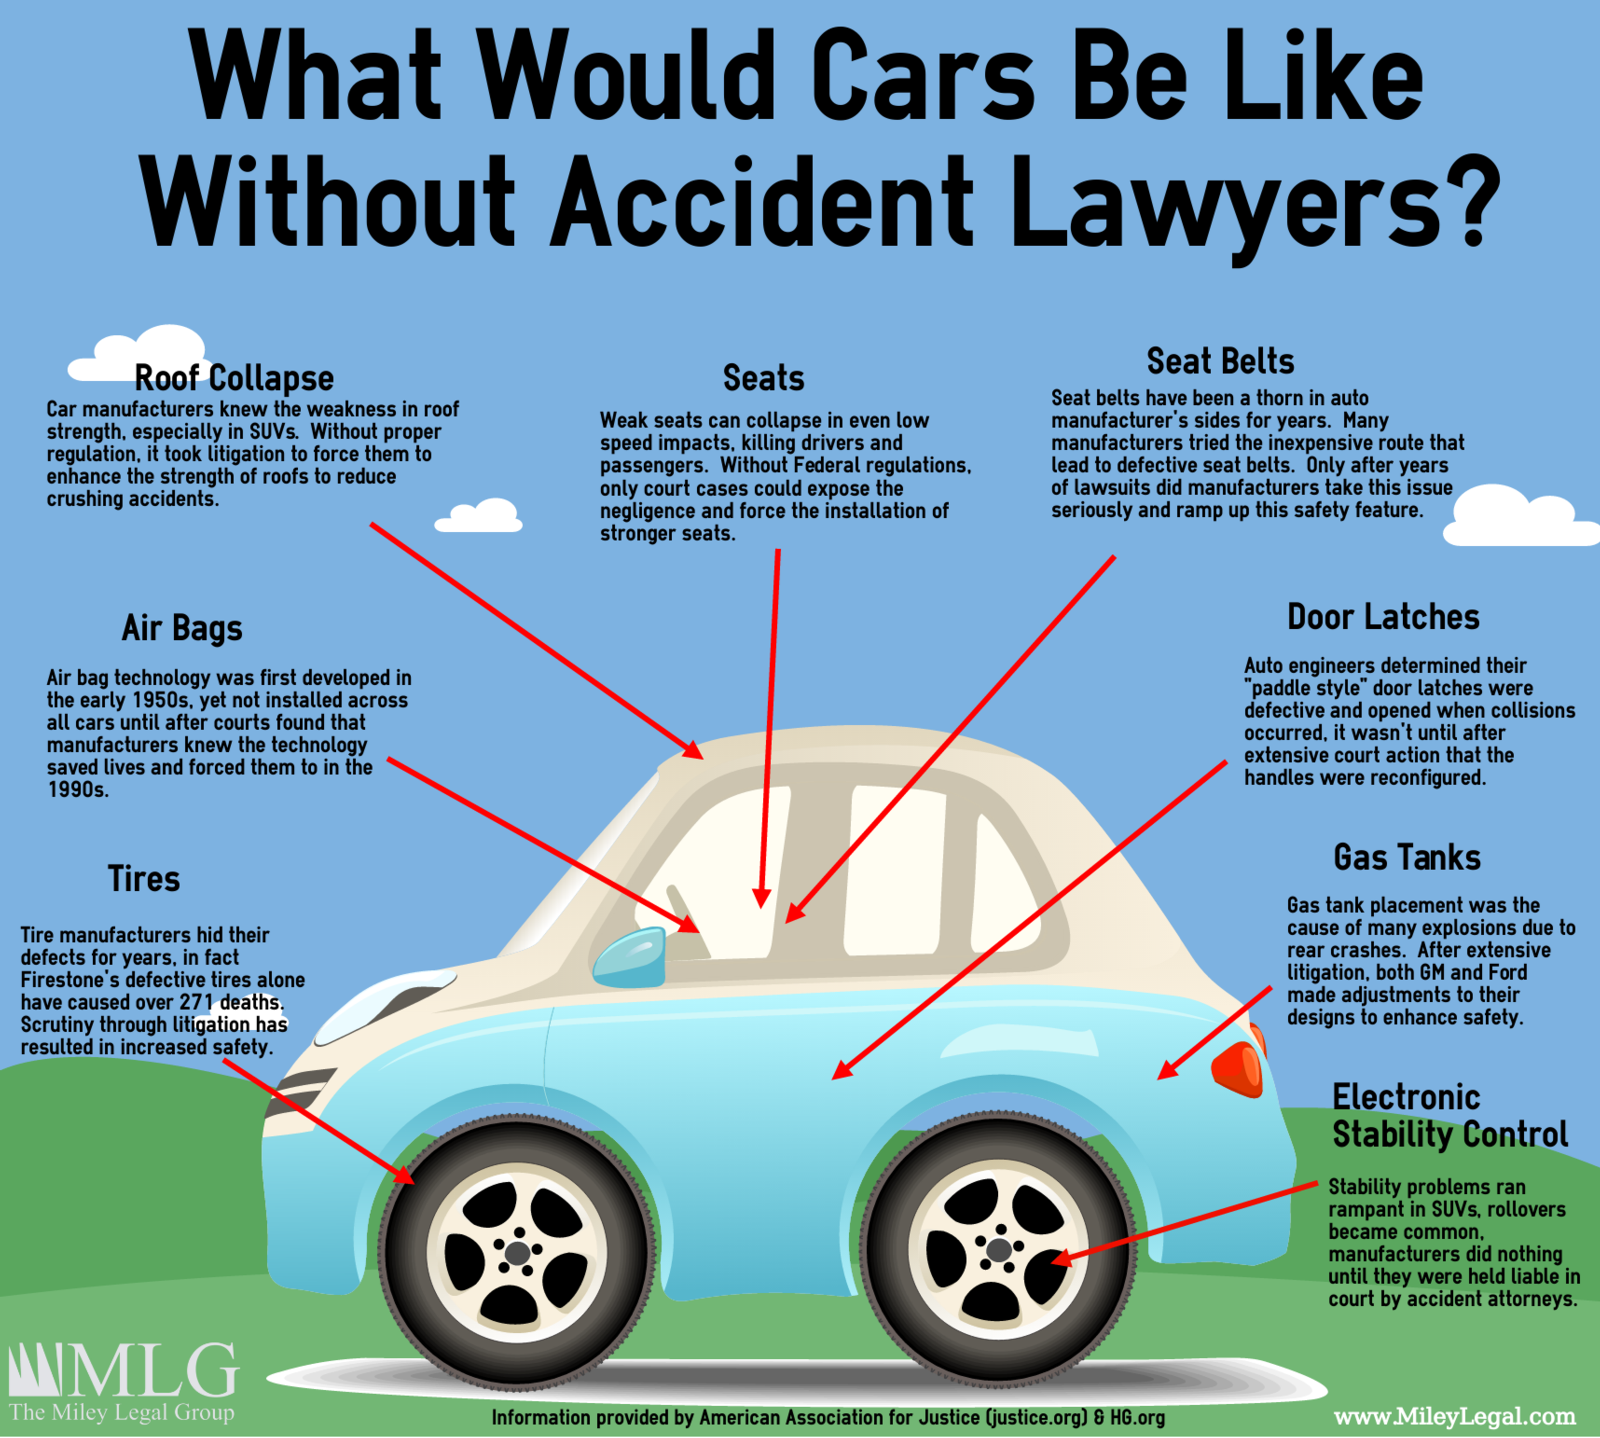 accident lawyers have increased auto safety and reduced accident injuries